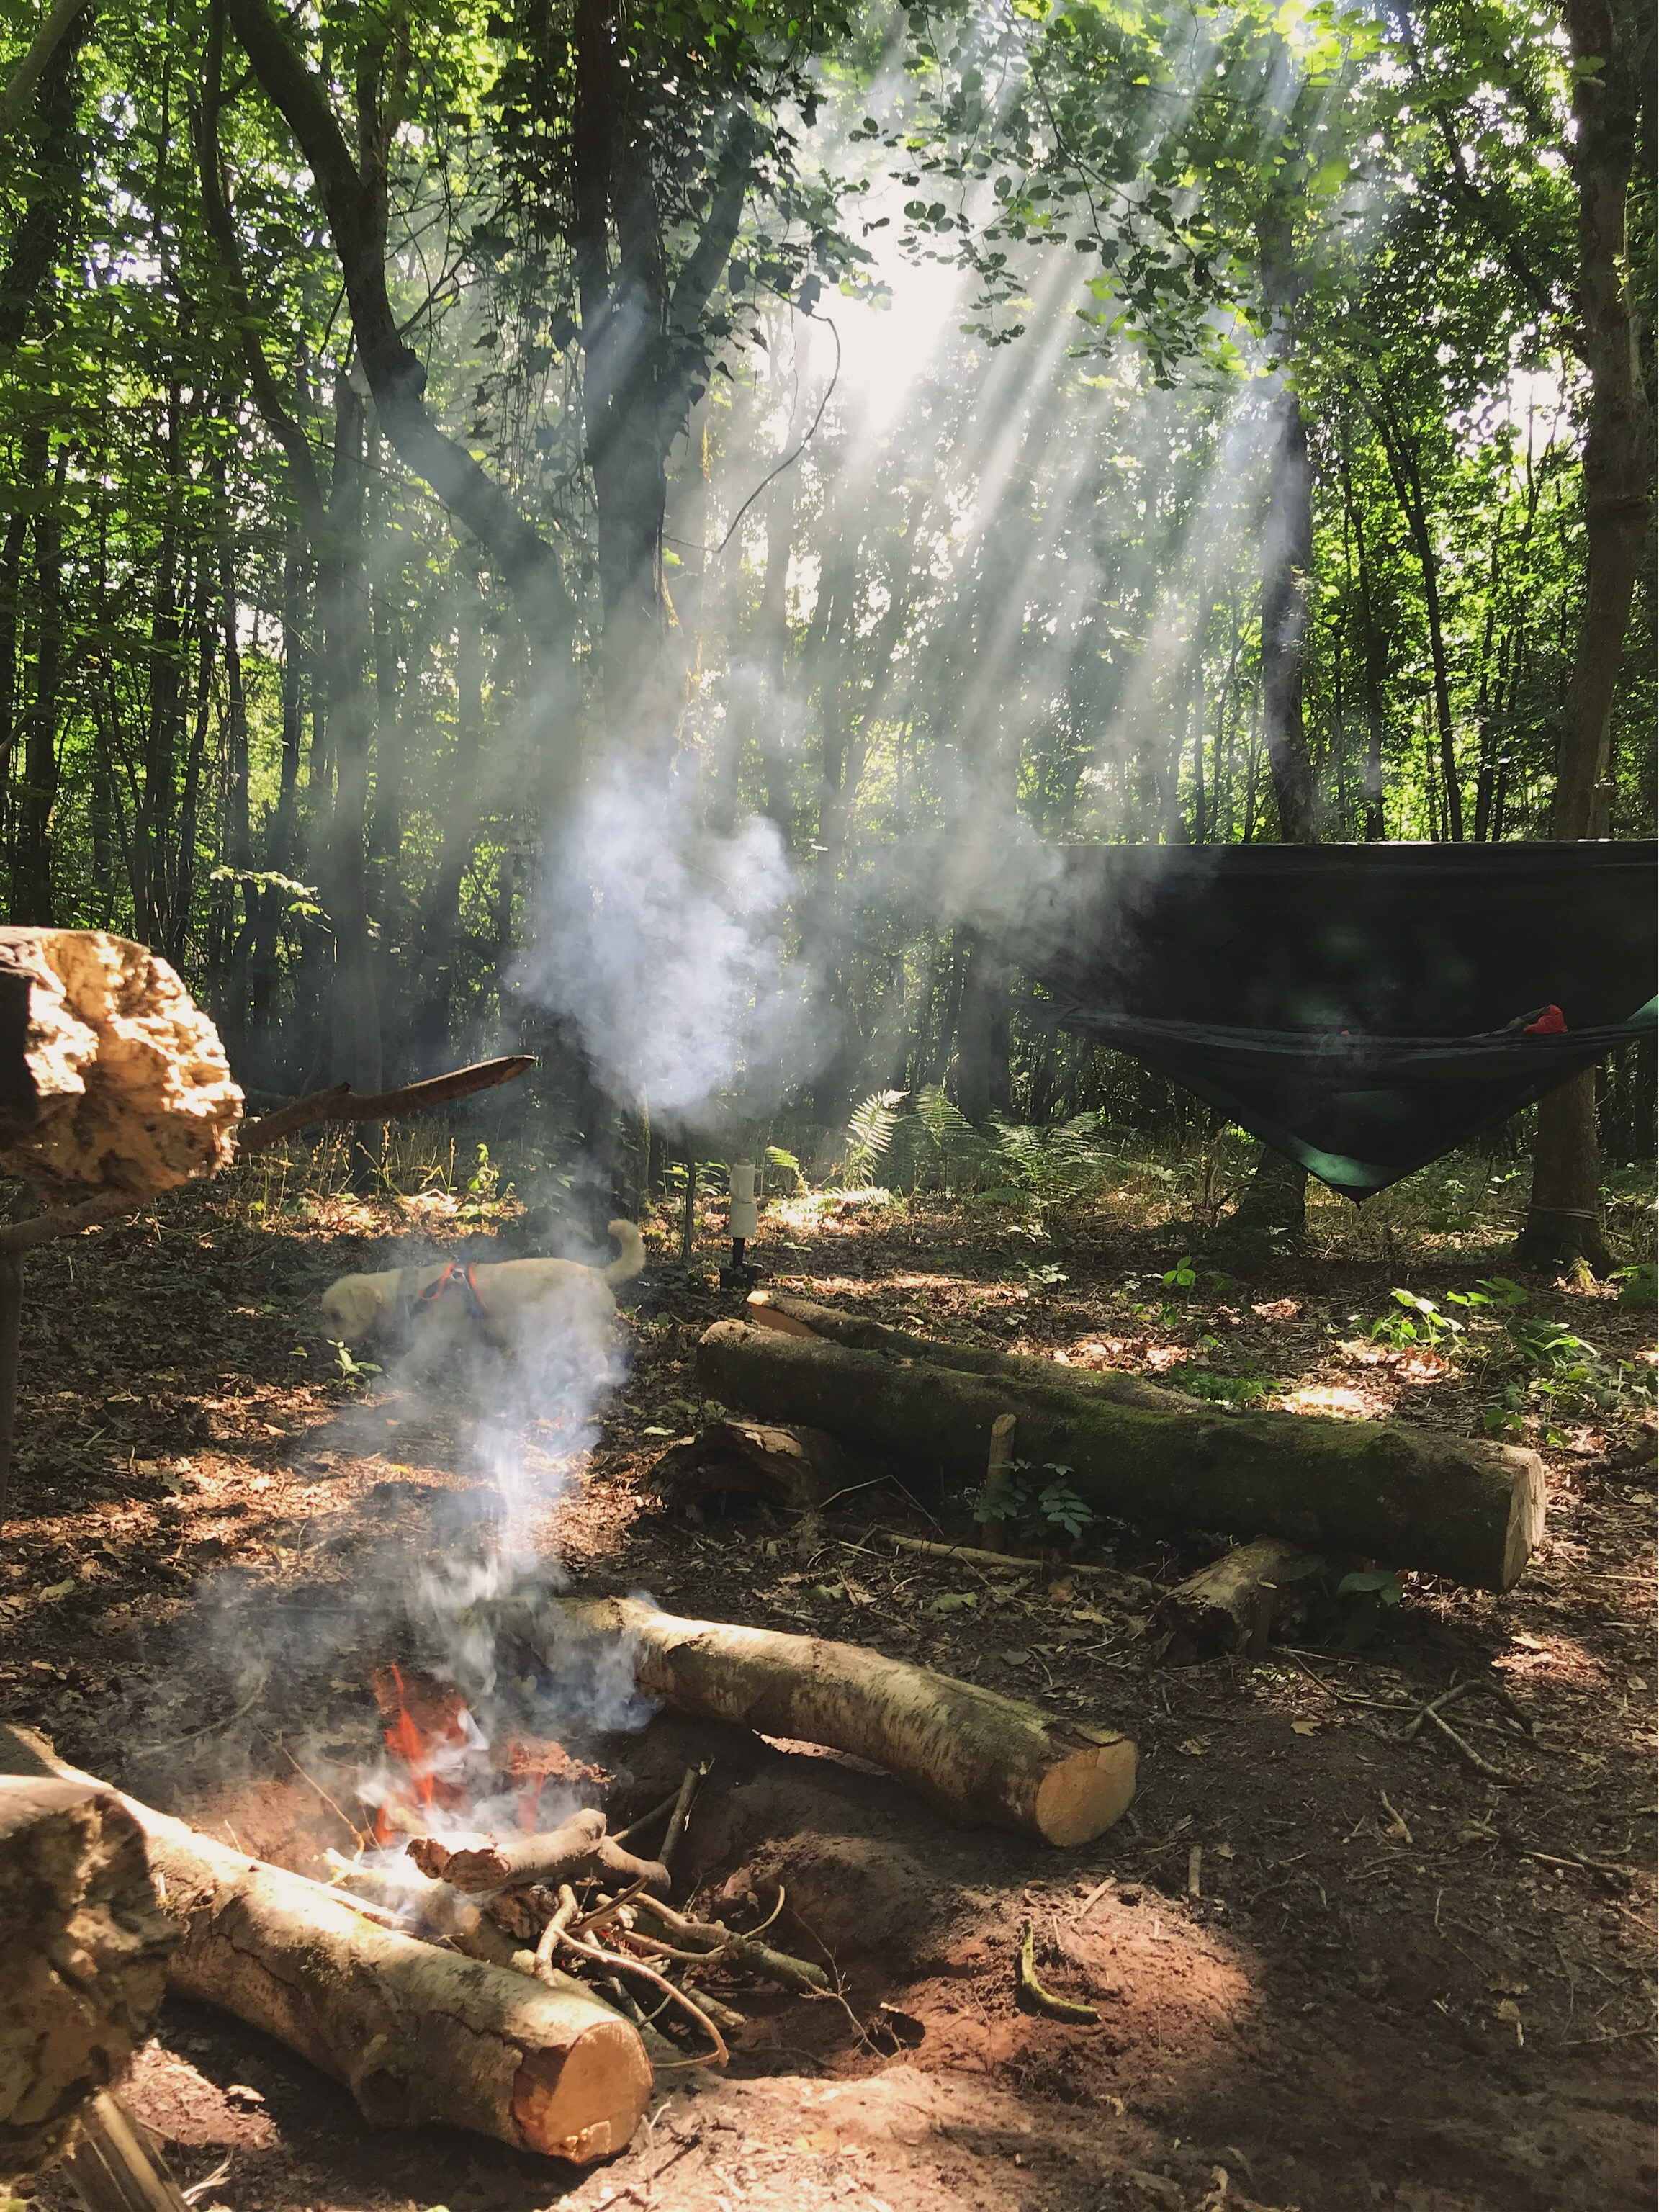 A campfire in the woods, smoke amongst rays of sunlight